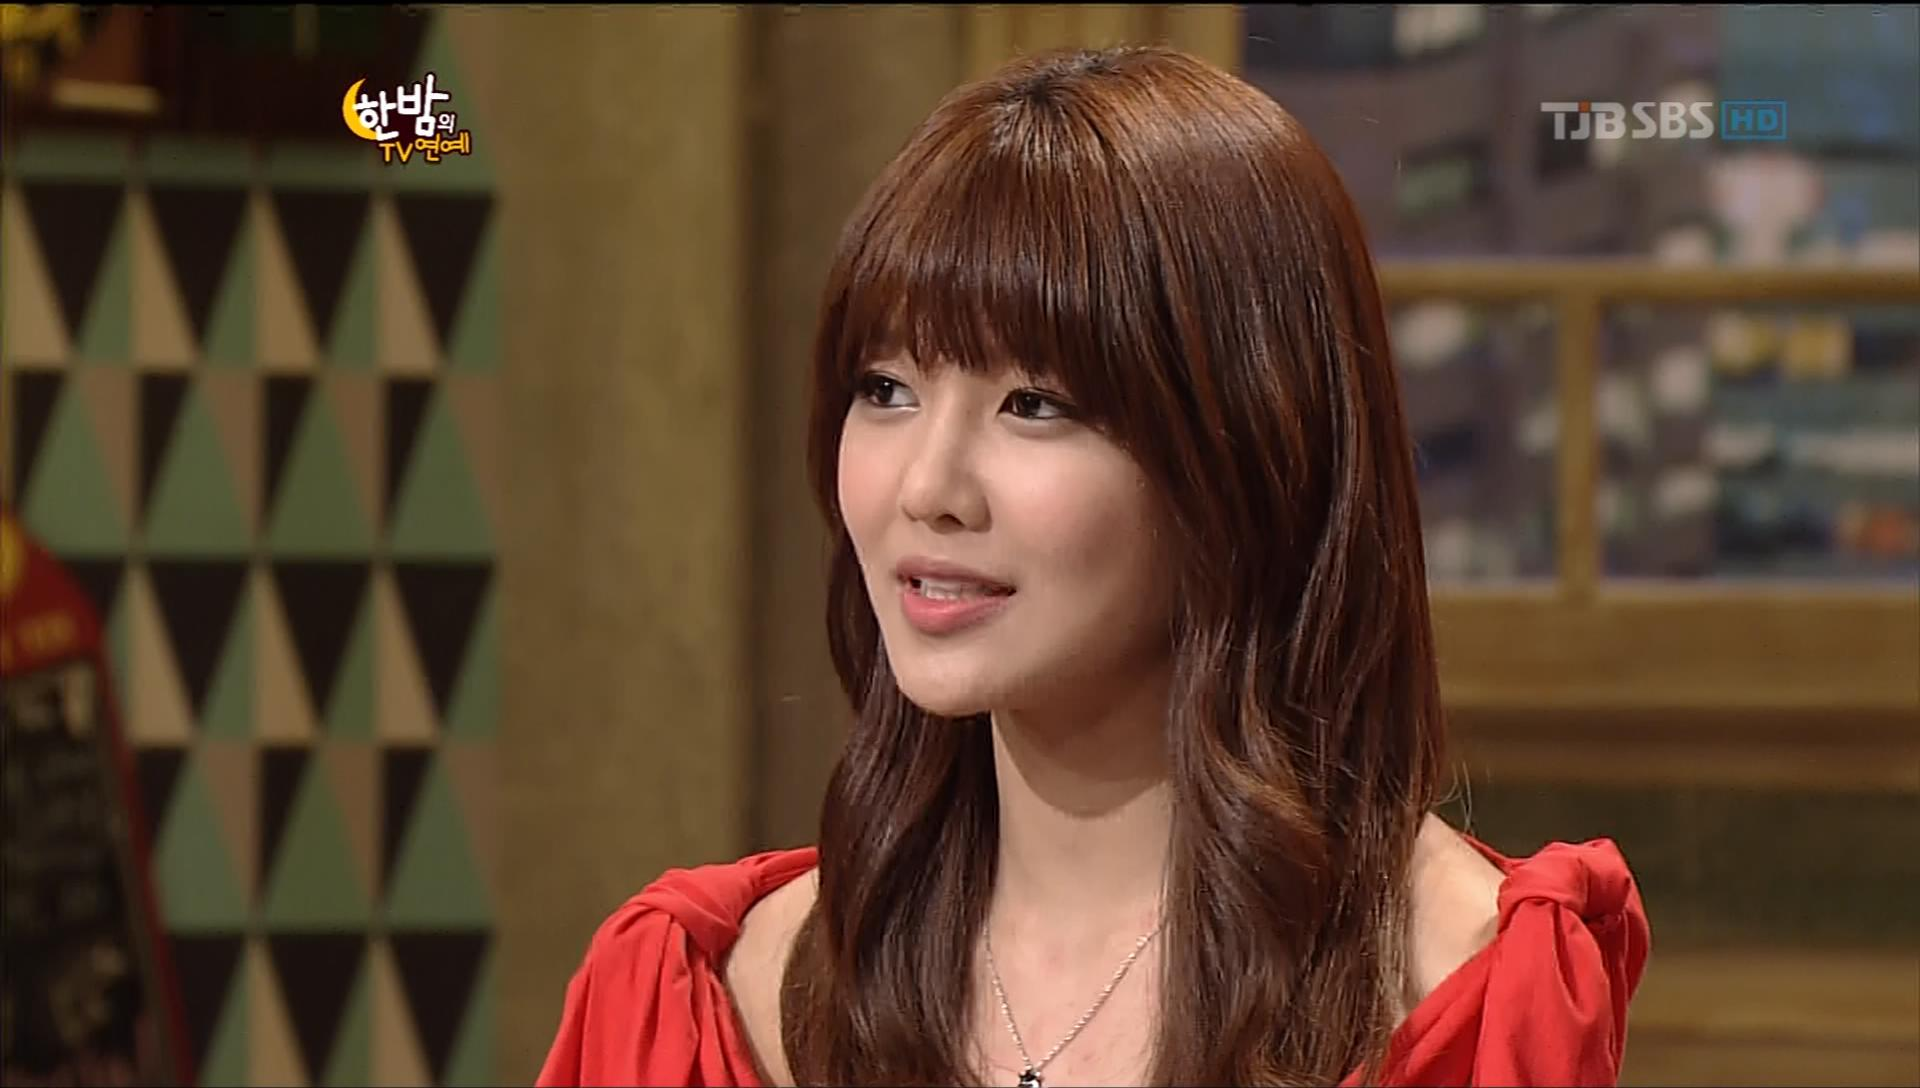 Girls' Generation Sooyoung Wistfully Sighs at News of Celebrity Couples